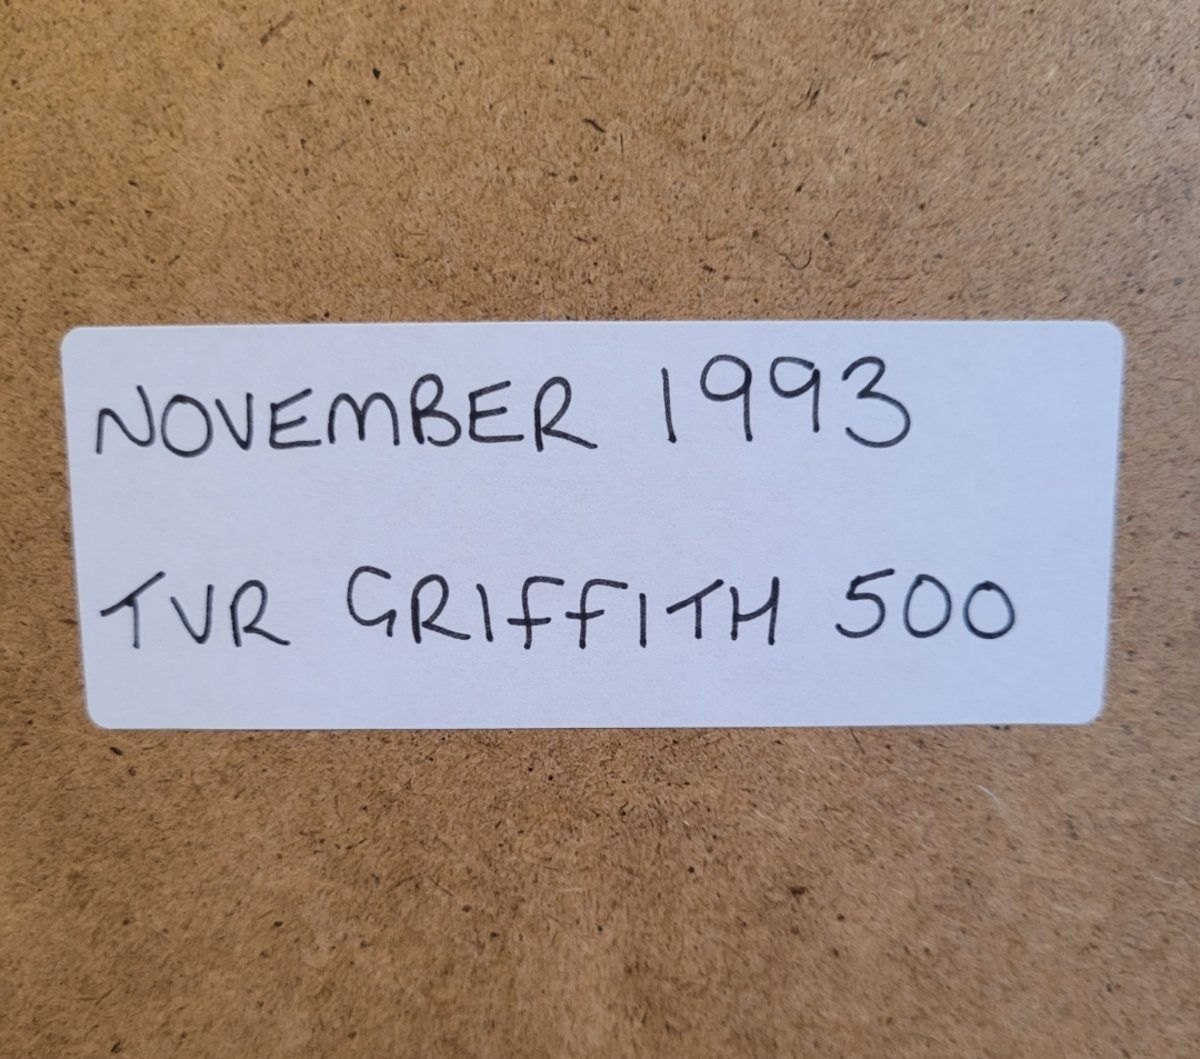 1963 Original 1993 TVR Griffith Framed Advert For Sale (picture 2 of 3)